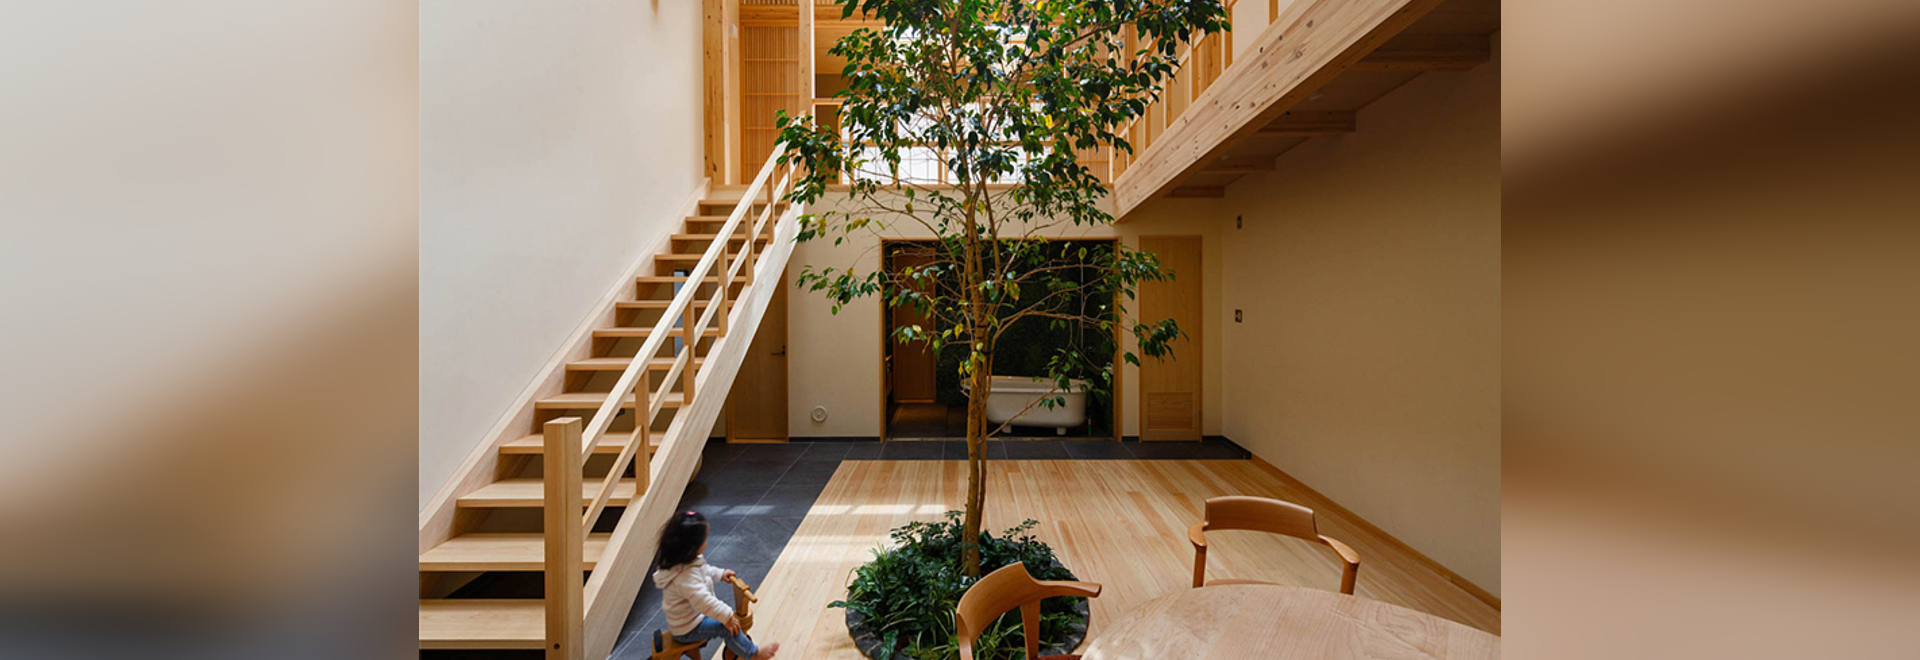 The Kyoto House has a Tree Growing in It